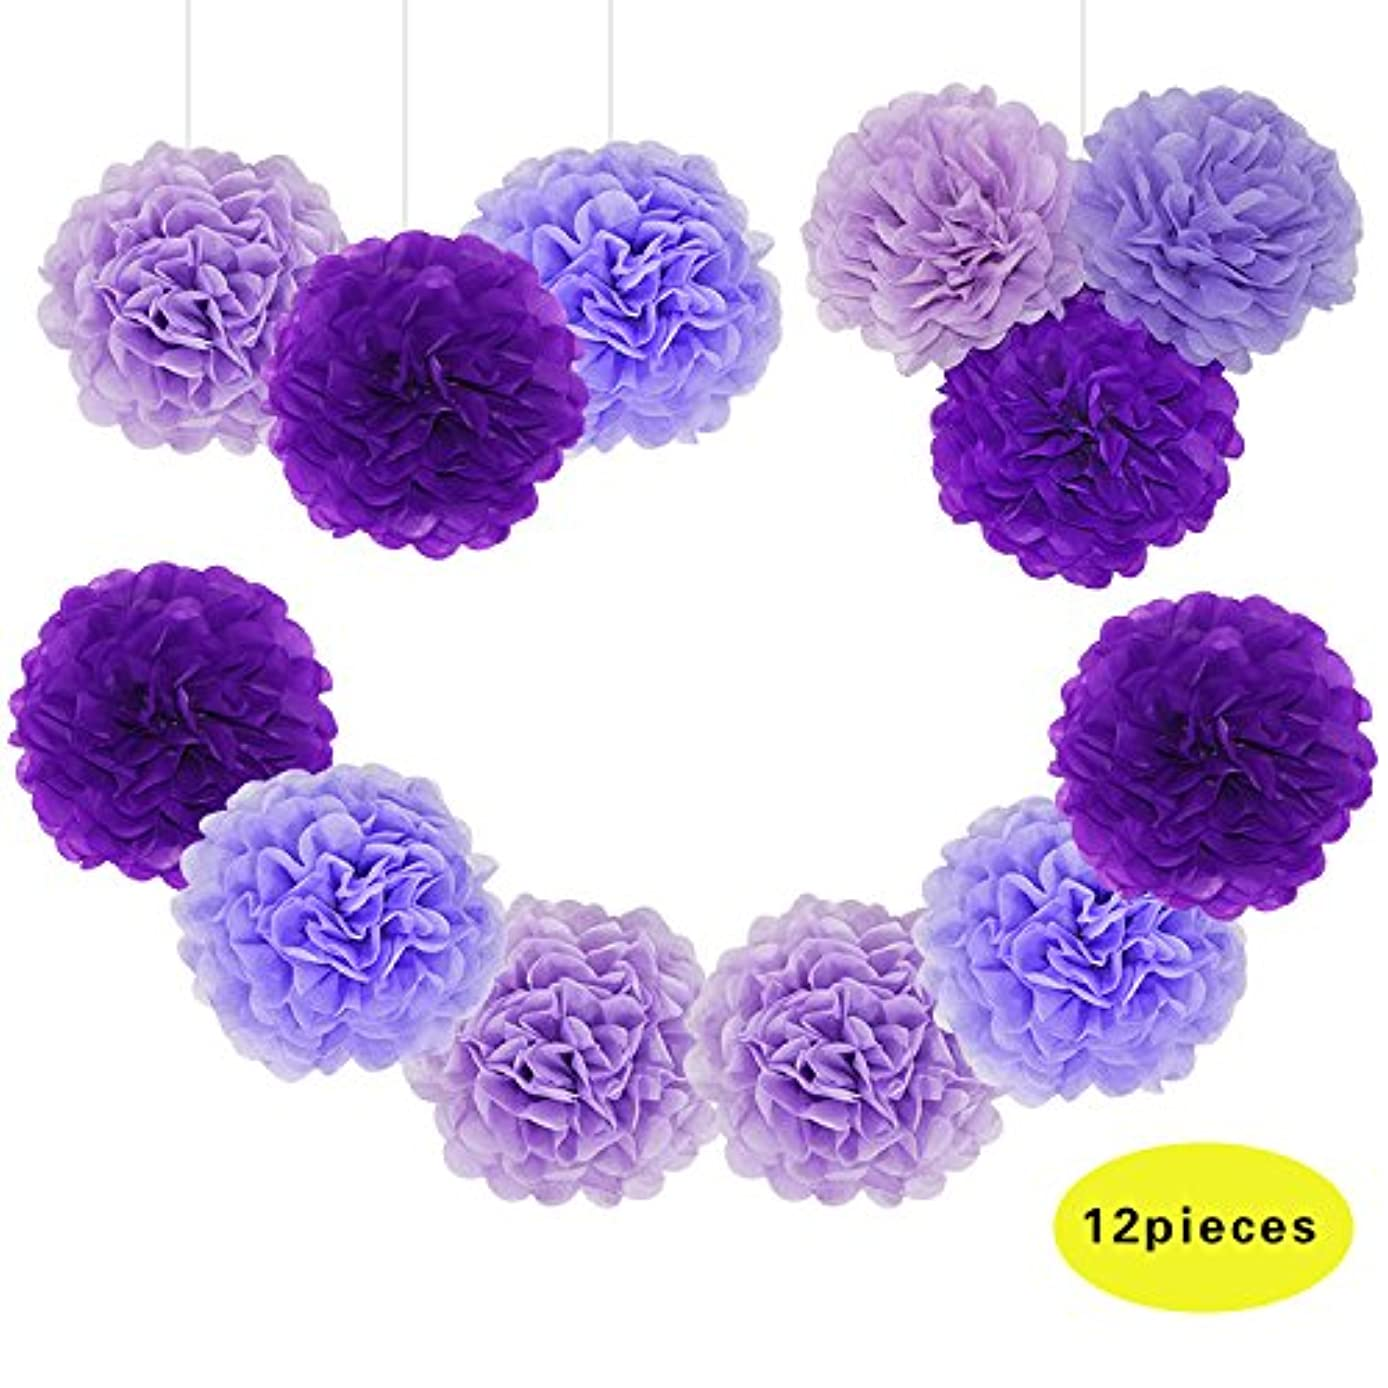 Jesipi Lavender Purple Lilac Tissue Paper Pompoms Wedding Decoration Hanging Party Supplies in 3